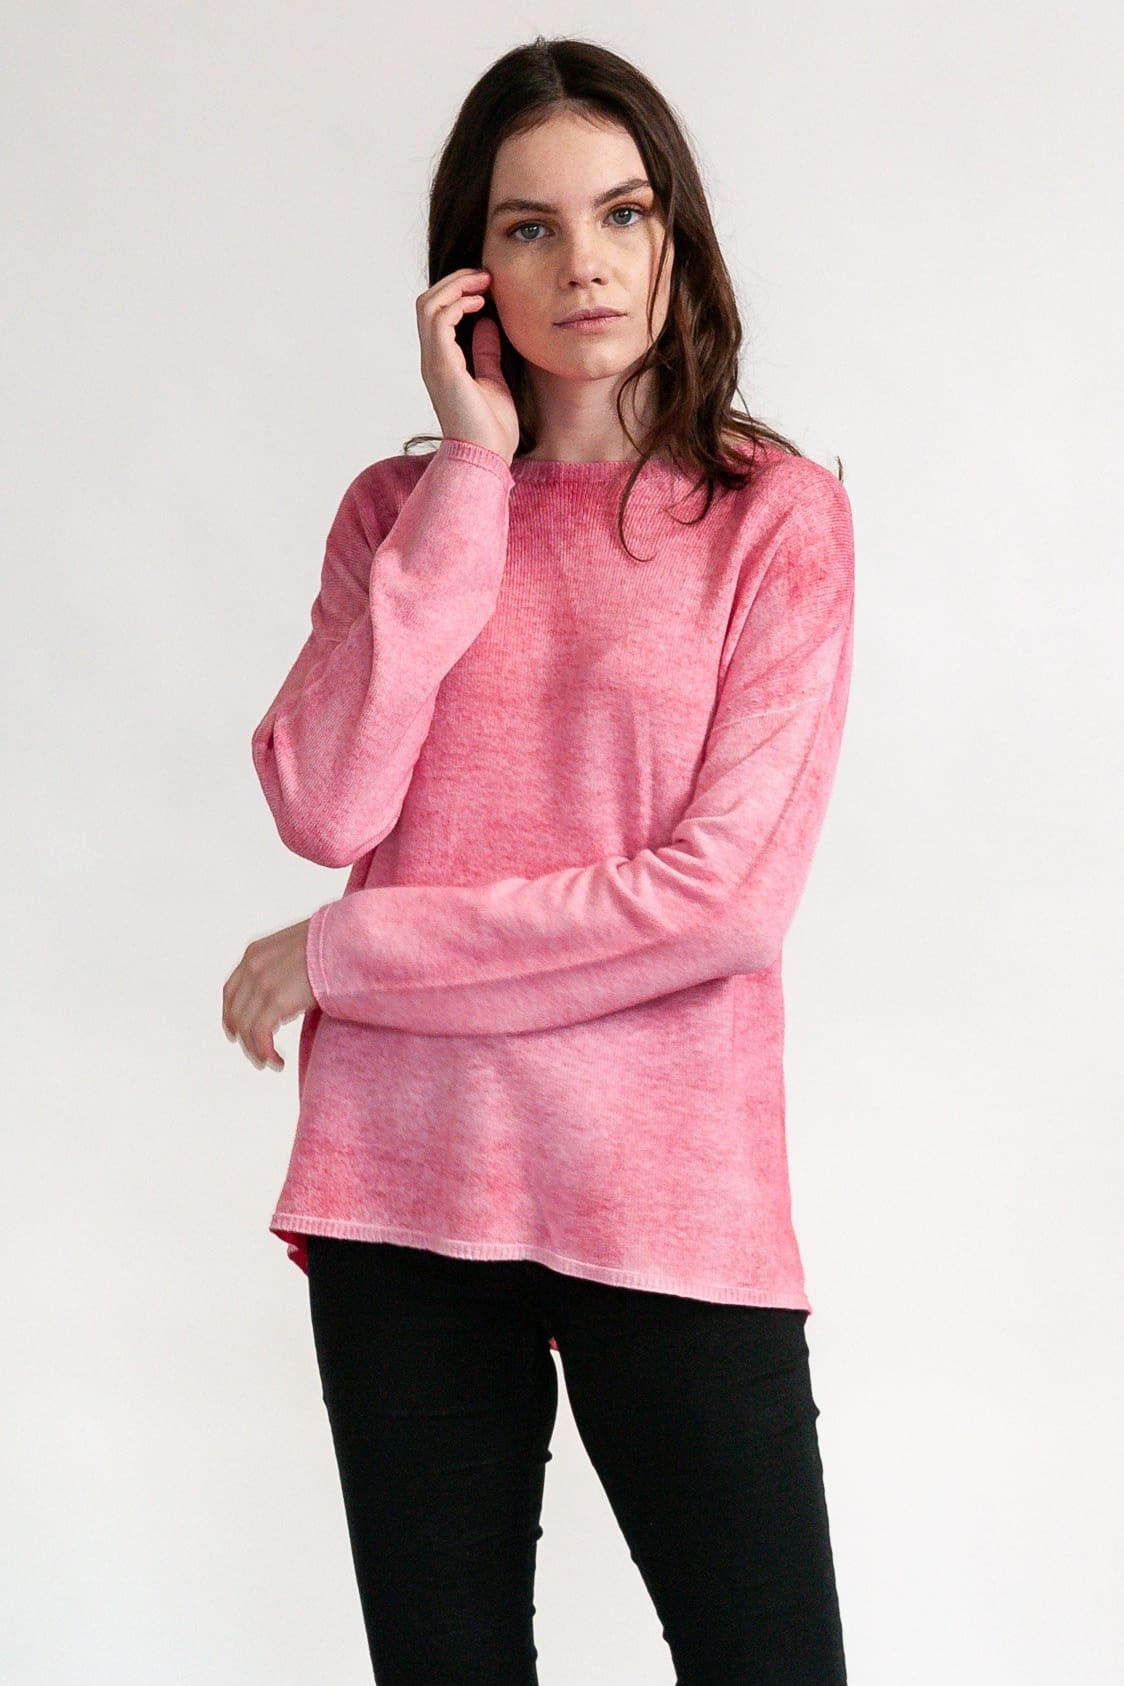 Dalby Cashmere - Cherry - Sweaters